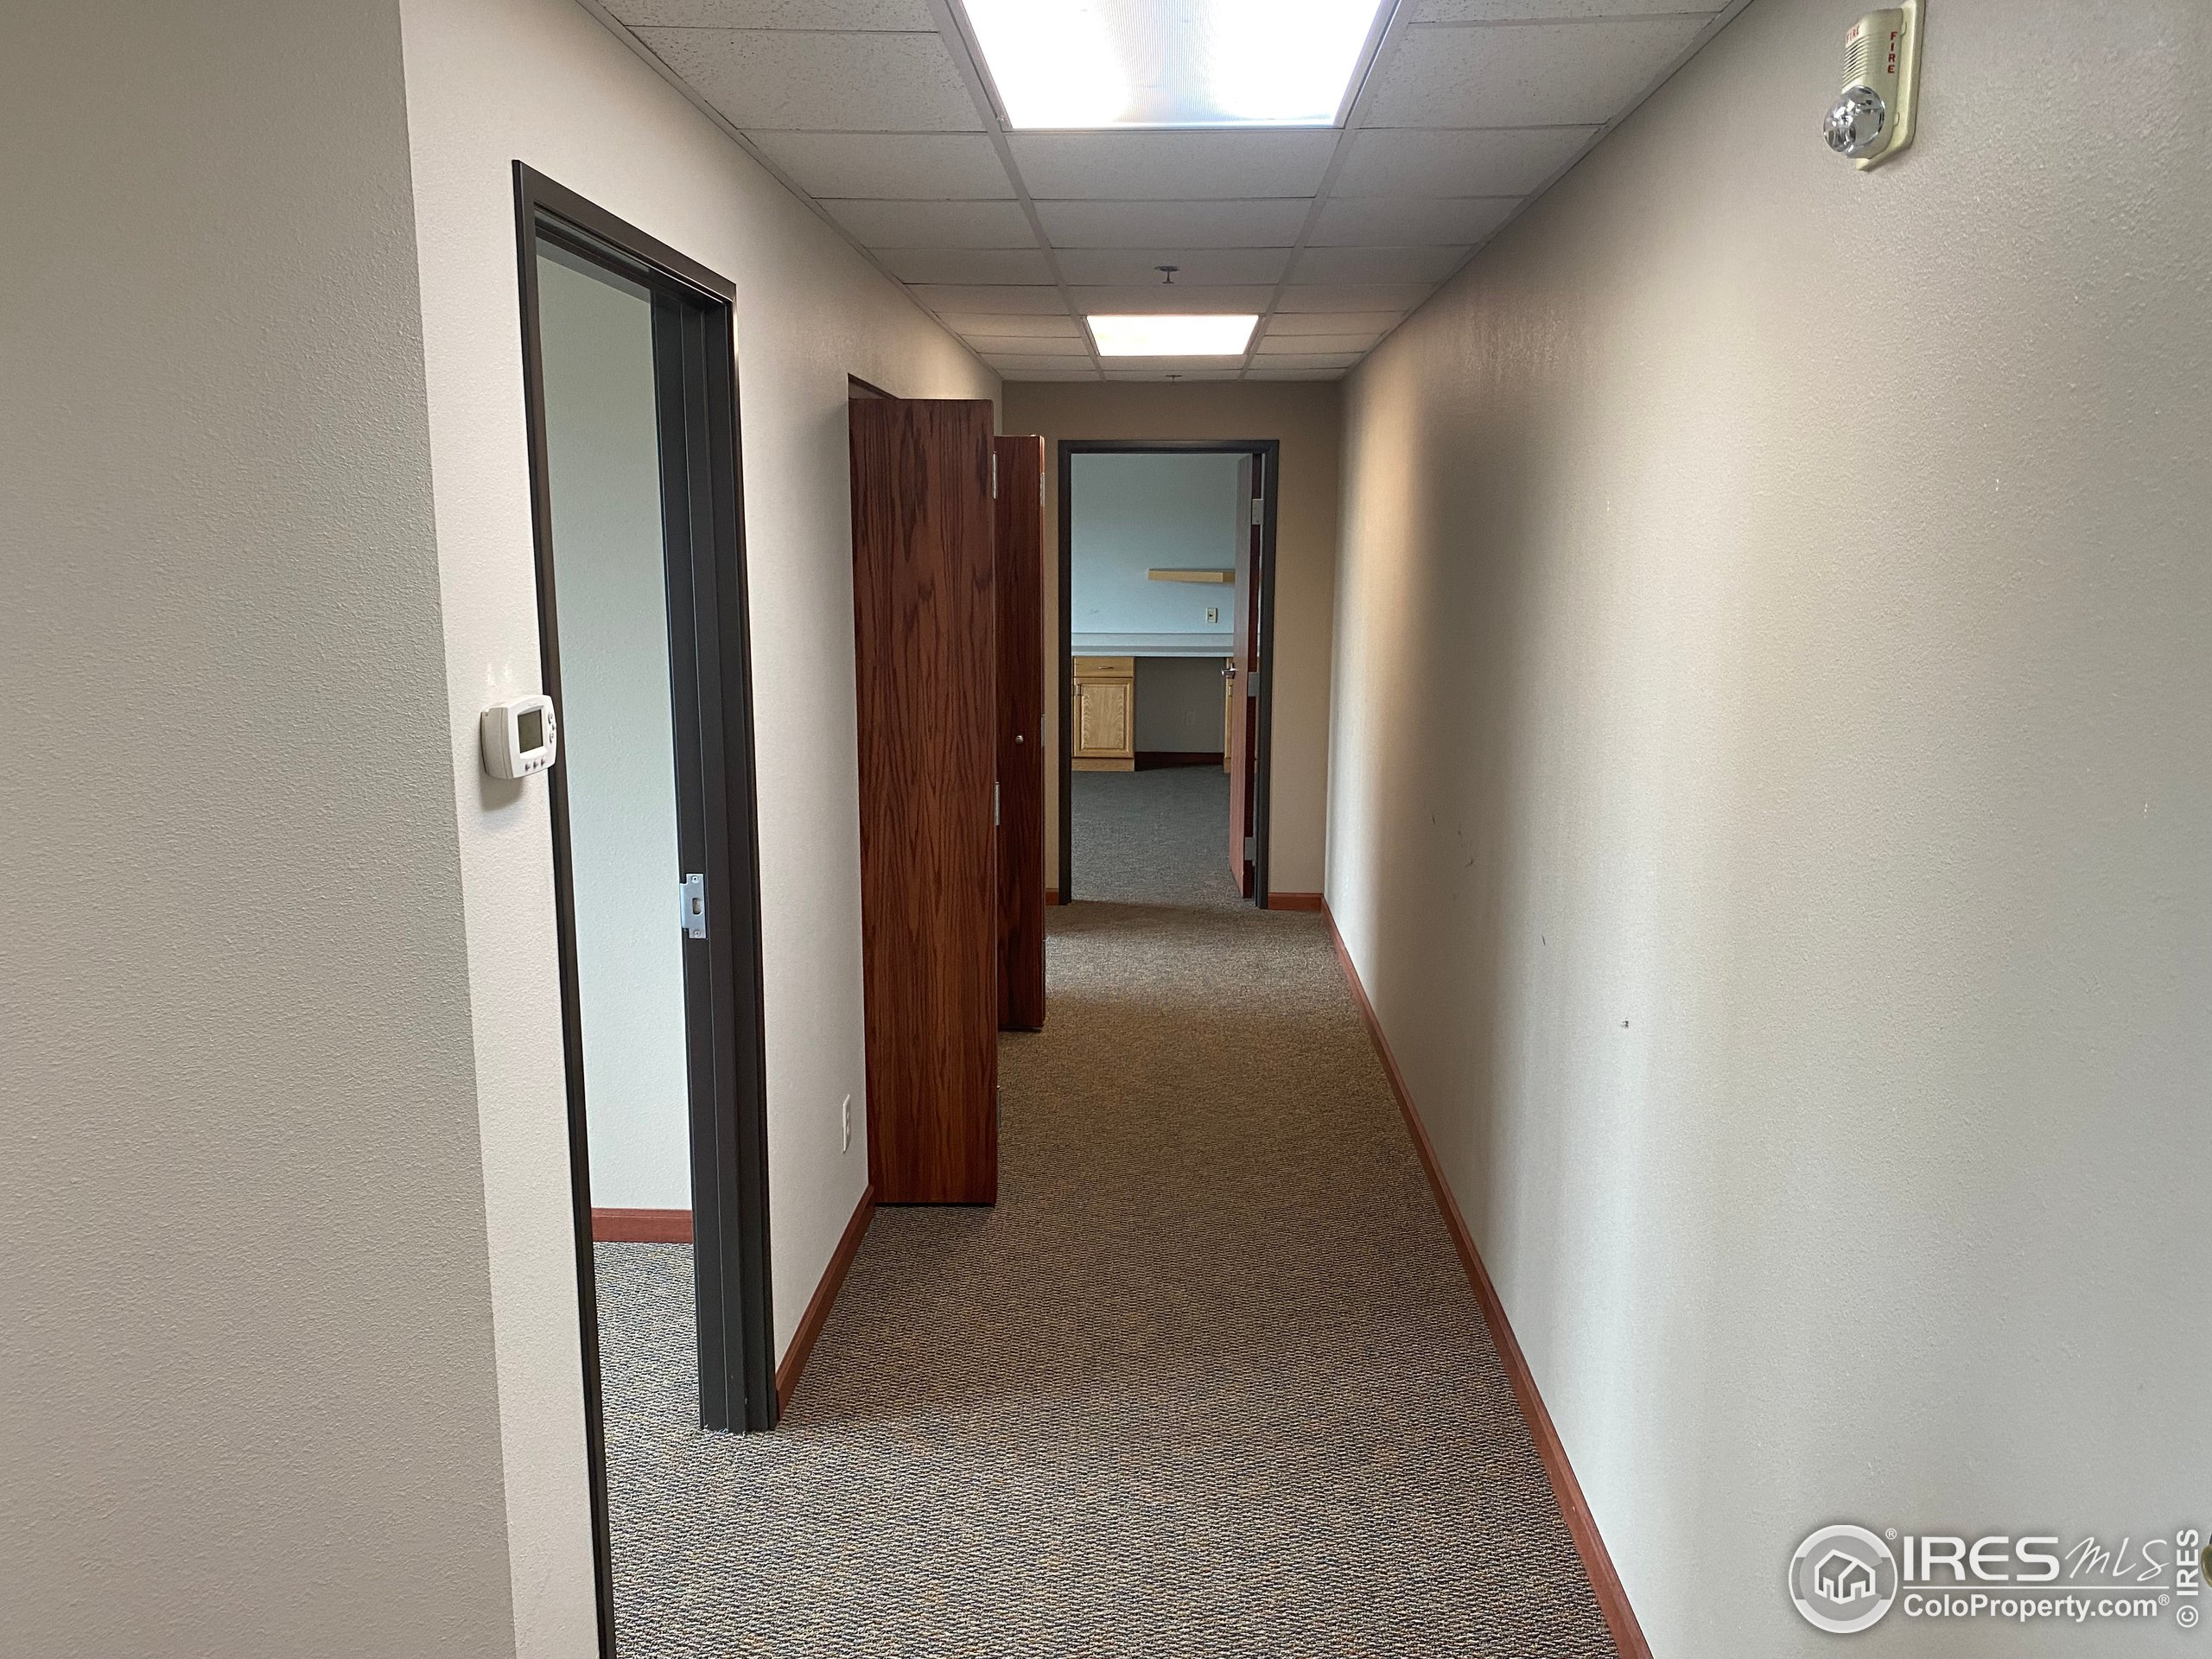 Hall to private offices